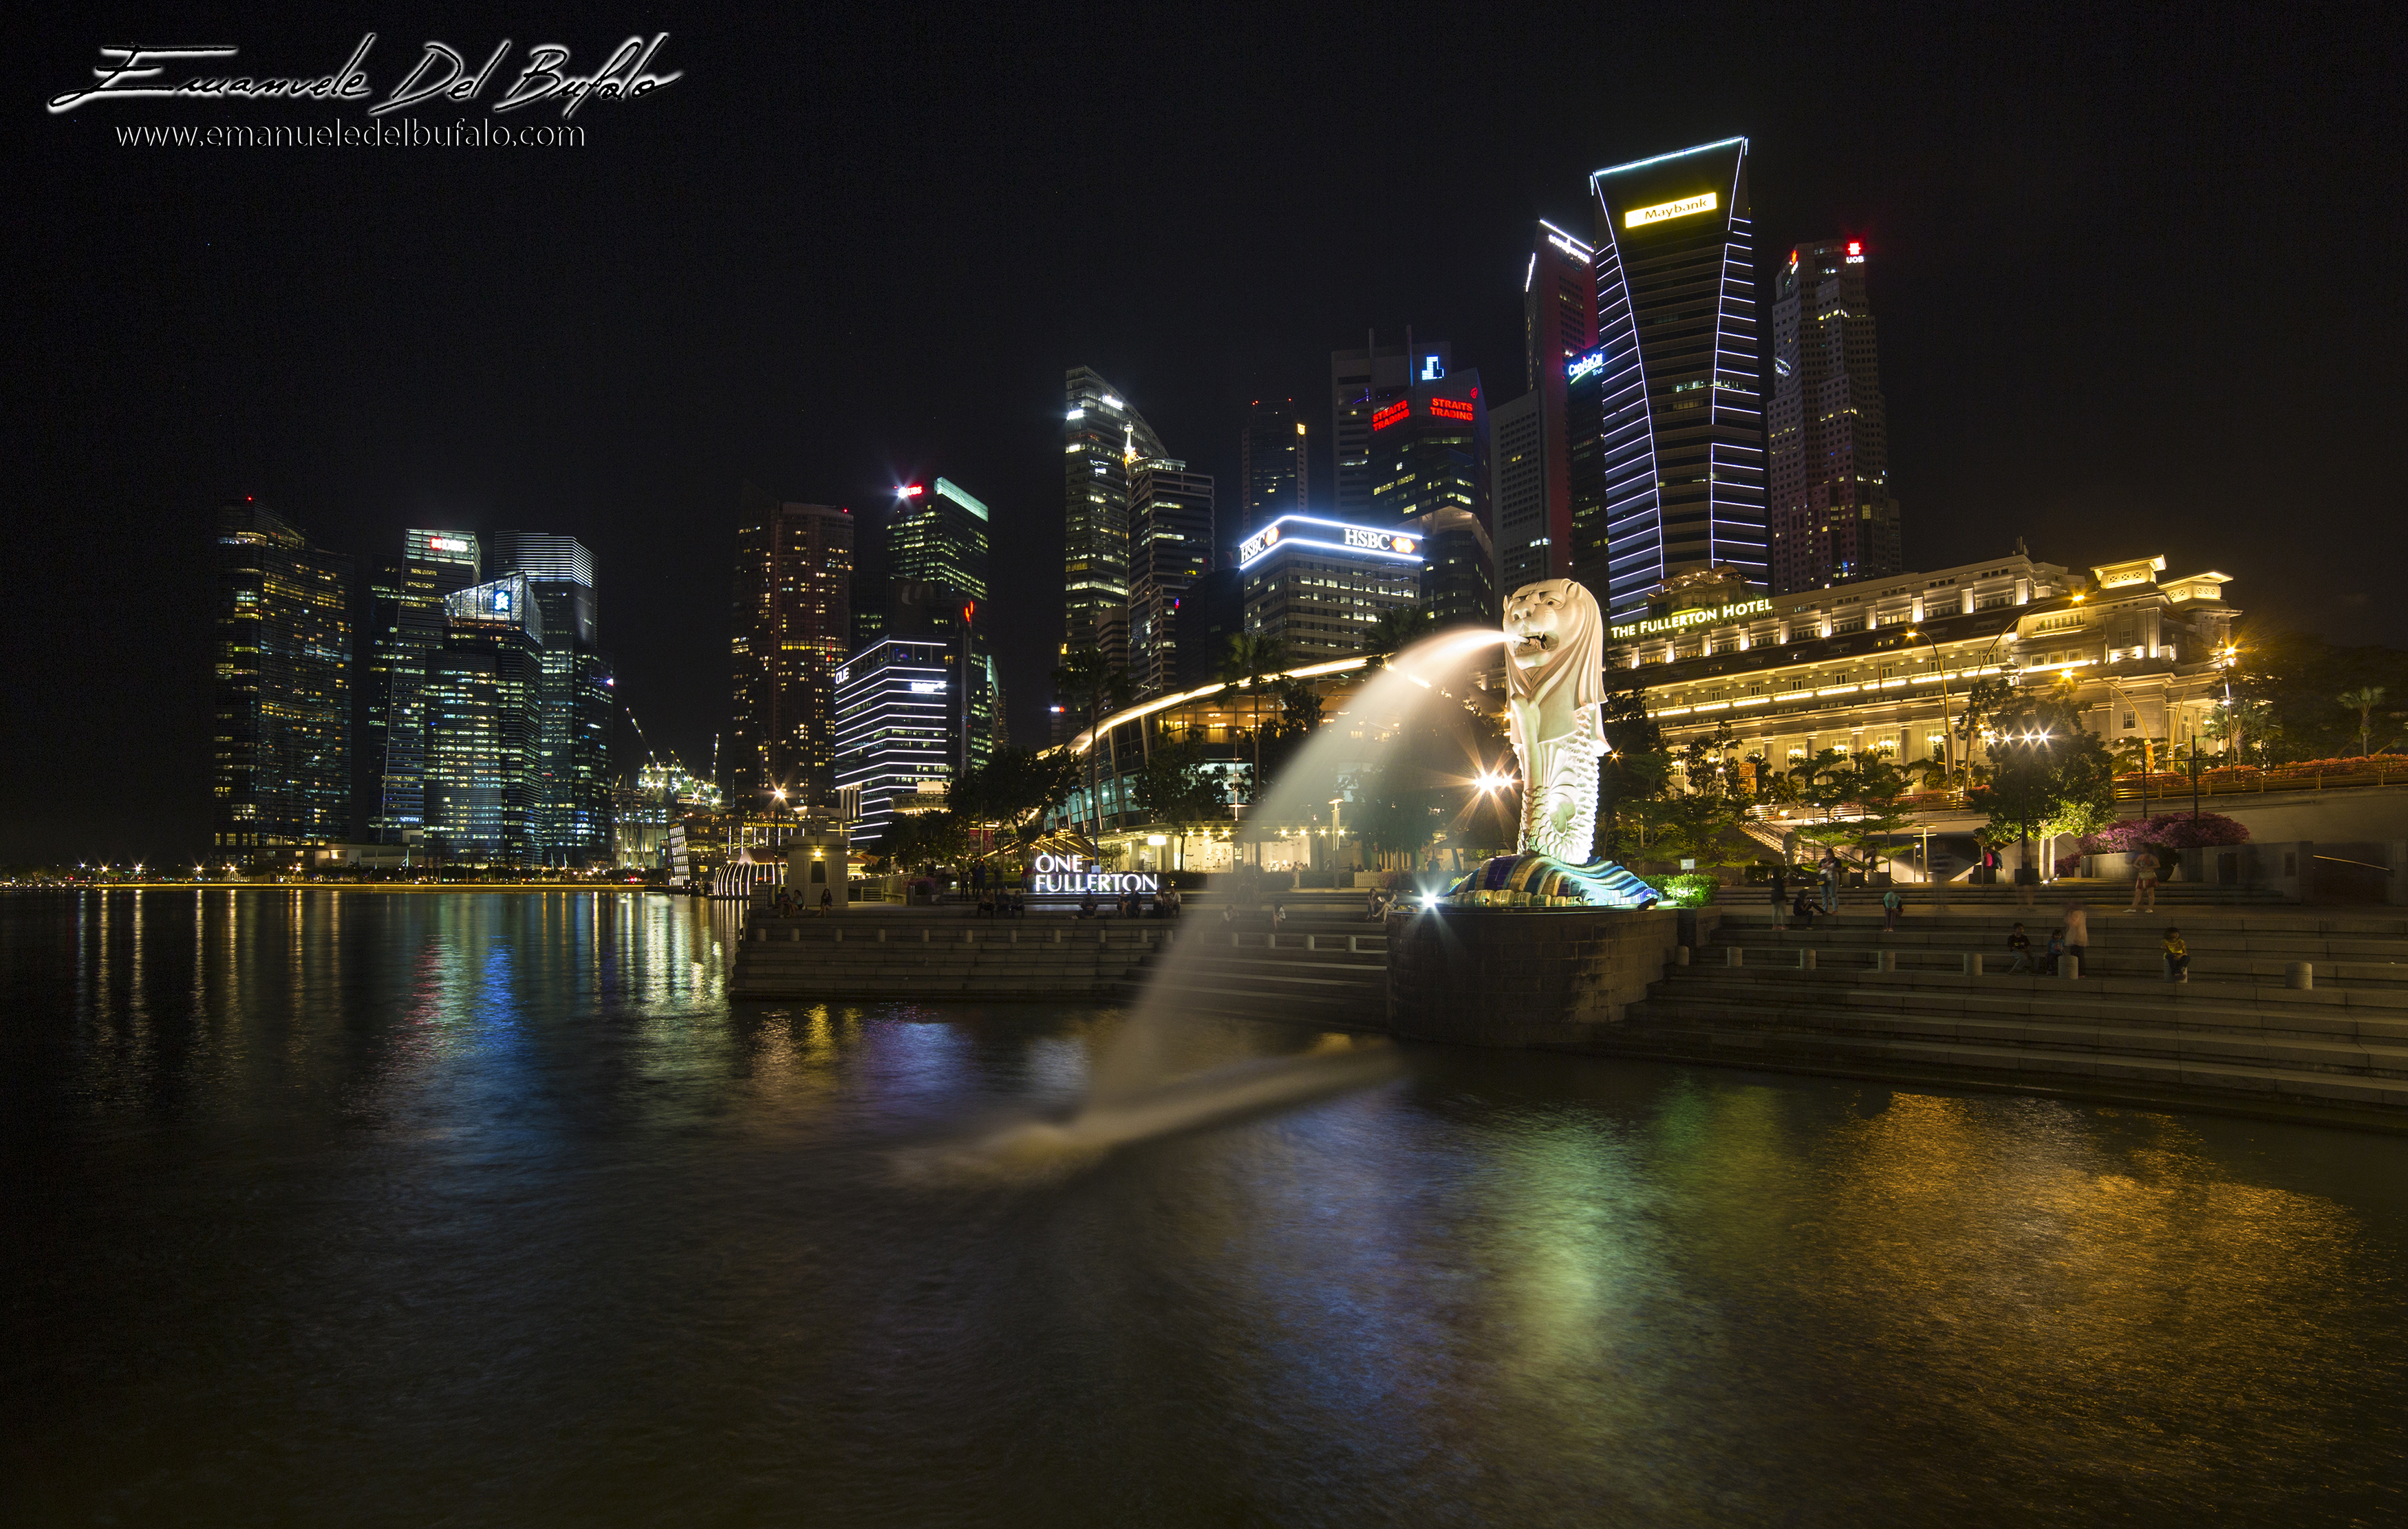 www.emanueledelbufalo.com #singapore #lion #skiline #night